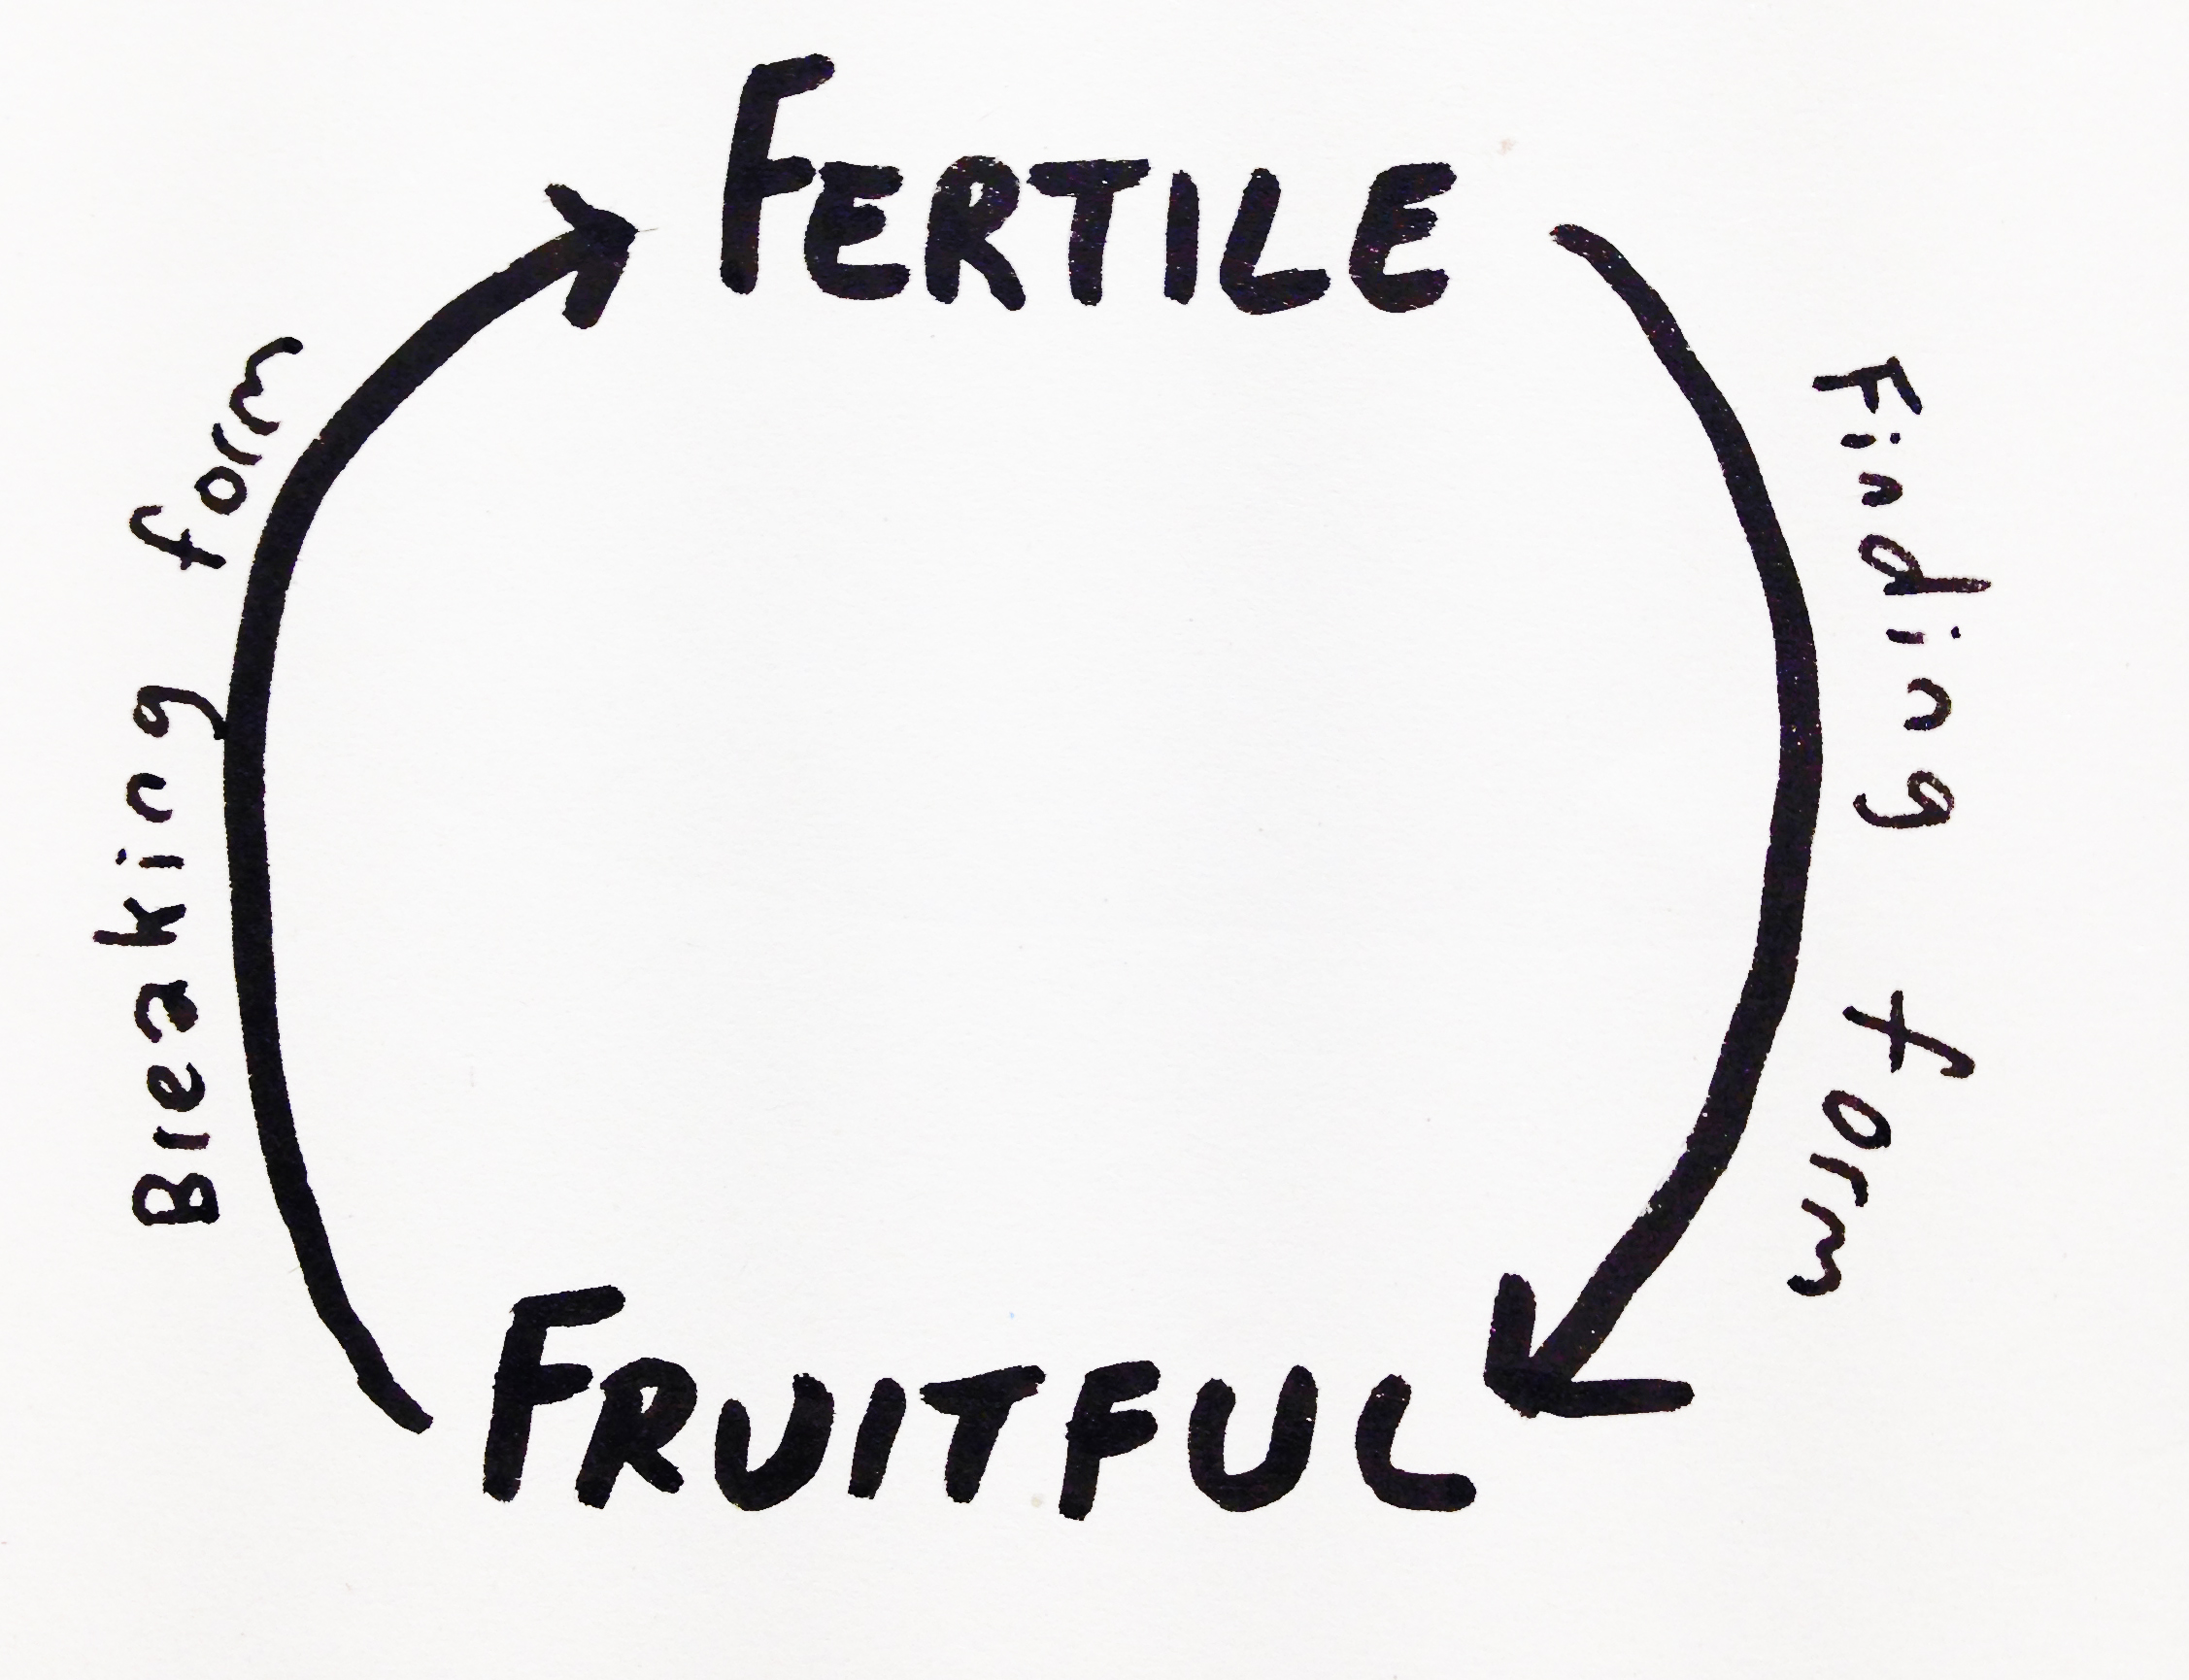 Fertile vs. Fruitful – Does cash stifle creative experimentation?